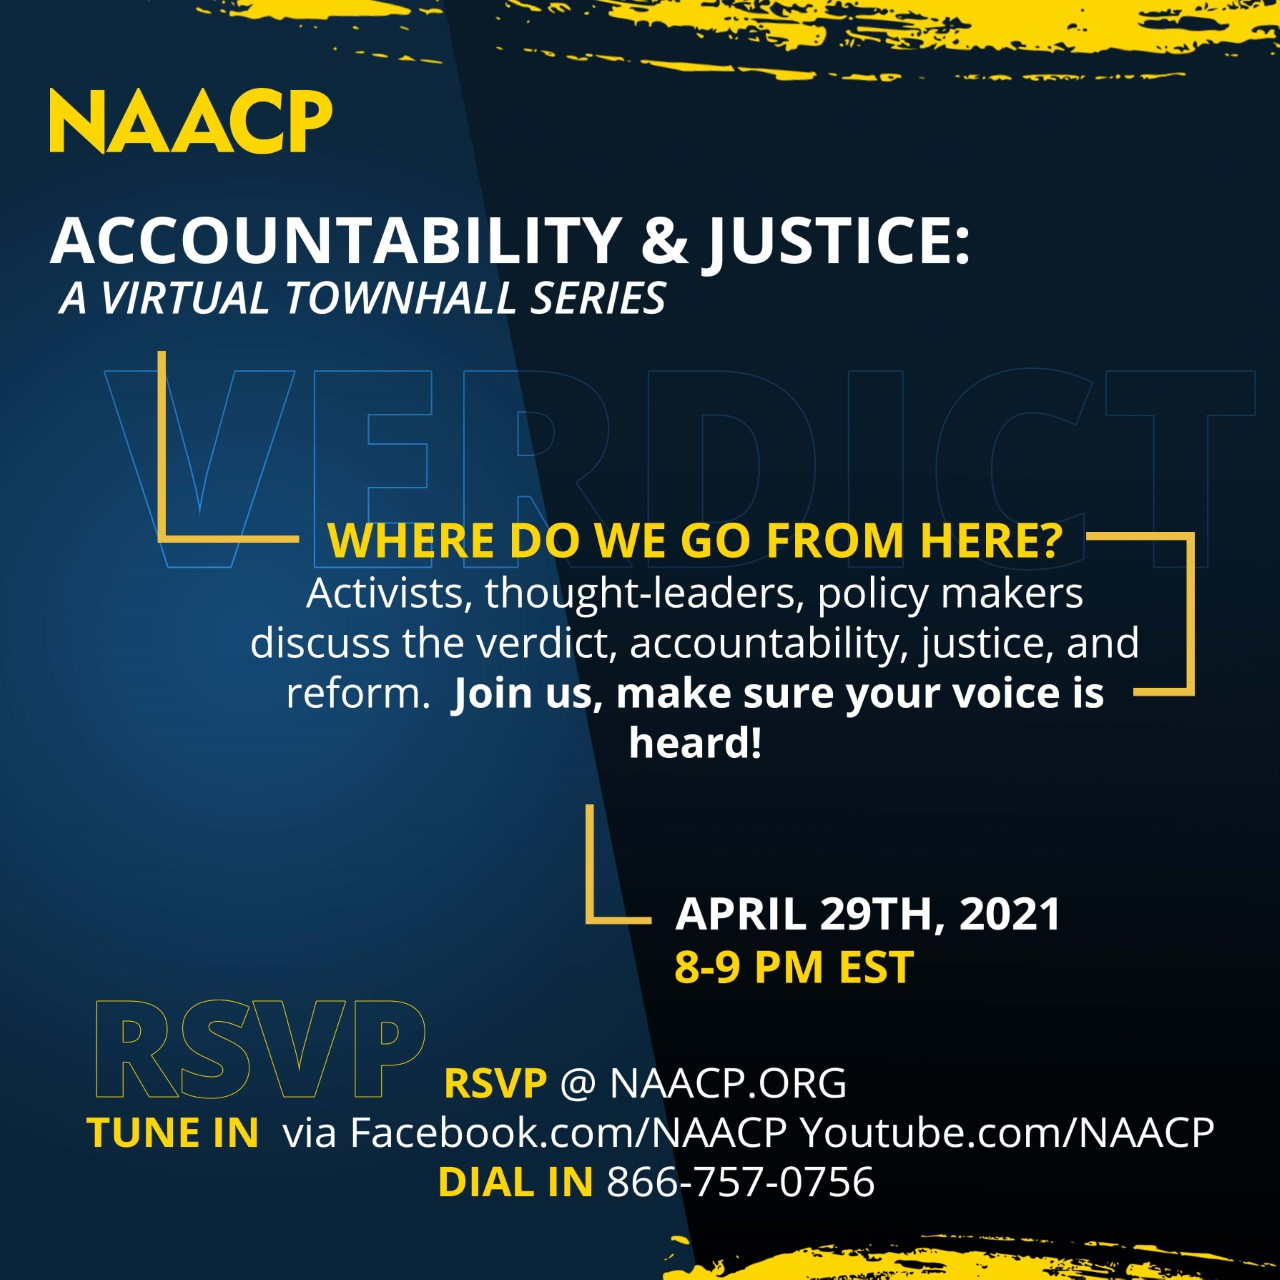 RSVP - Accountability and Justice Town Hall April 29 - NAACP